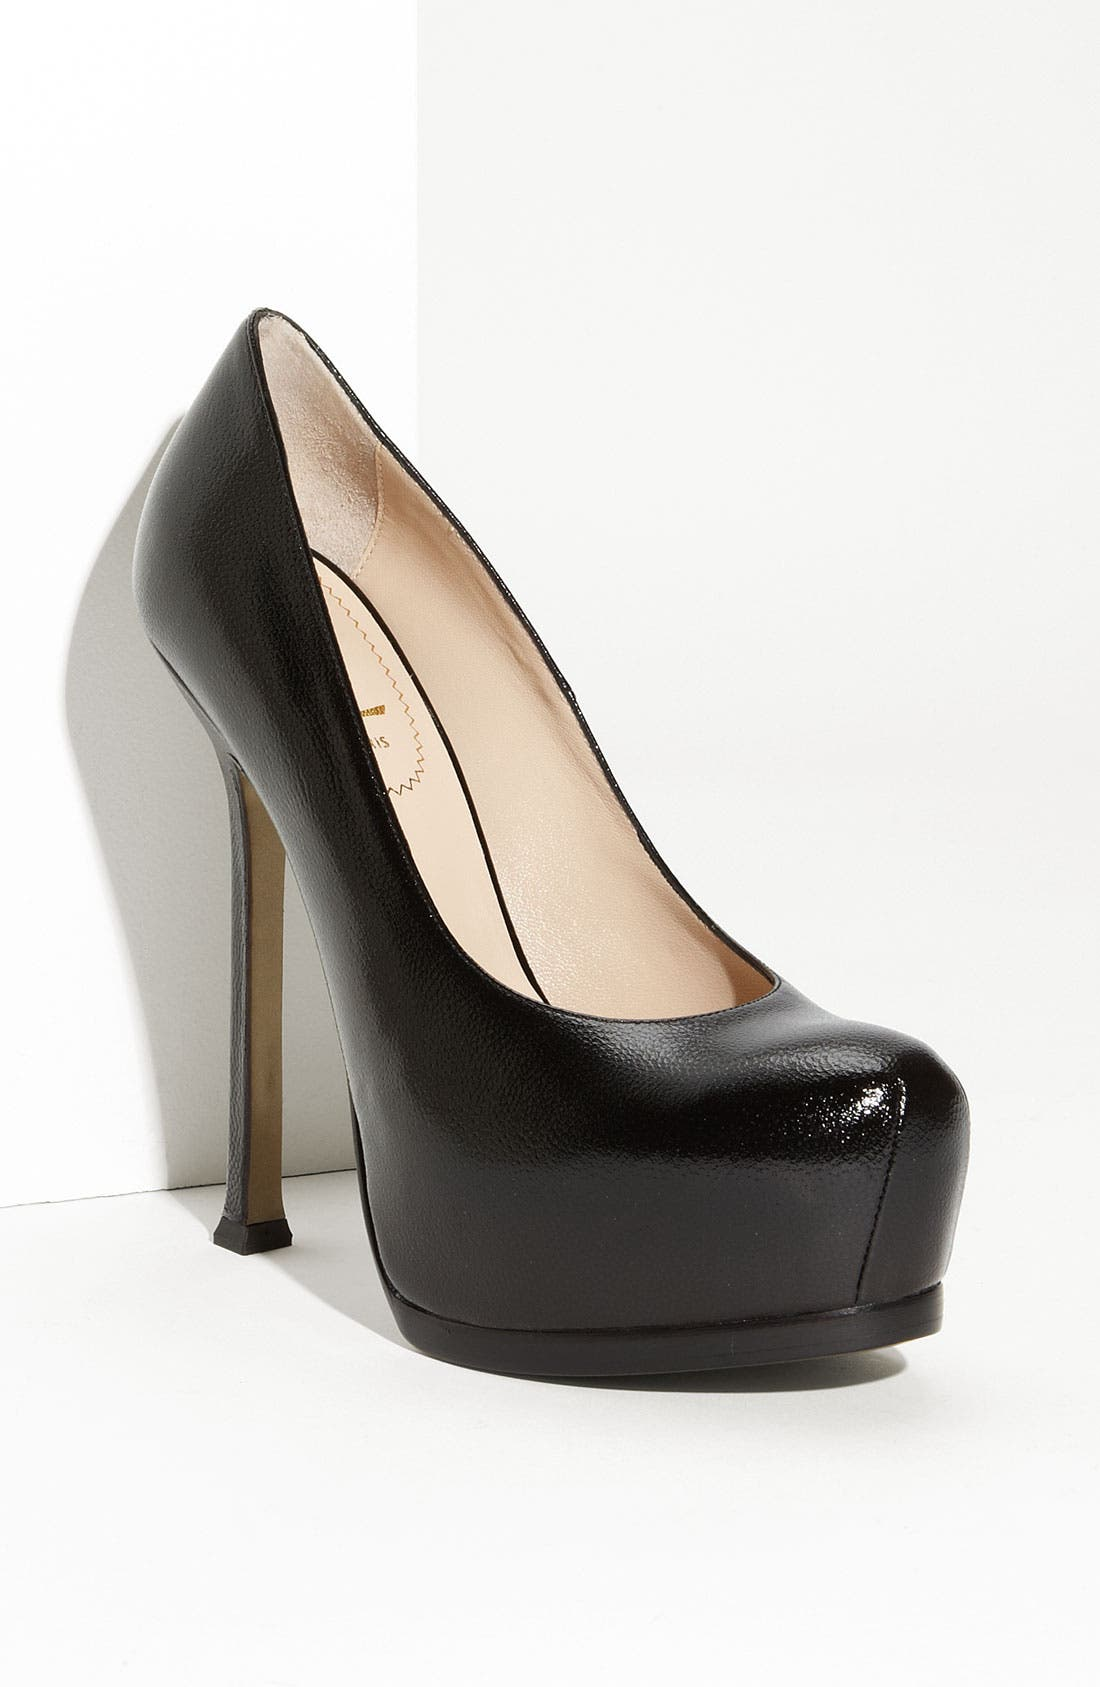 Alternate Image 1 Selected - Saint Laurent 'Tribute Two' Leather Platform Pump